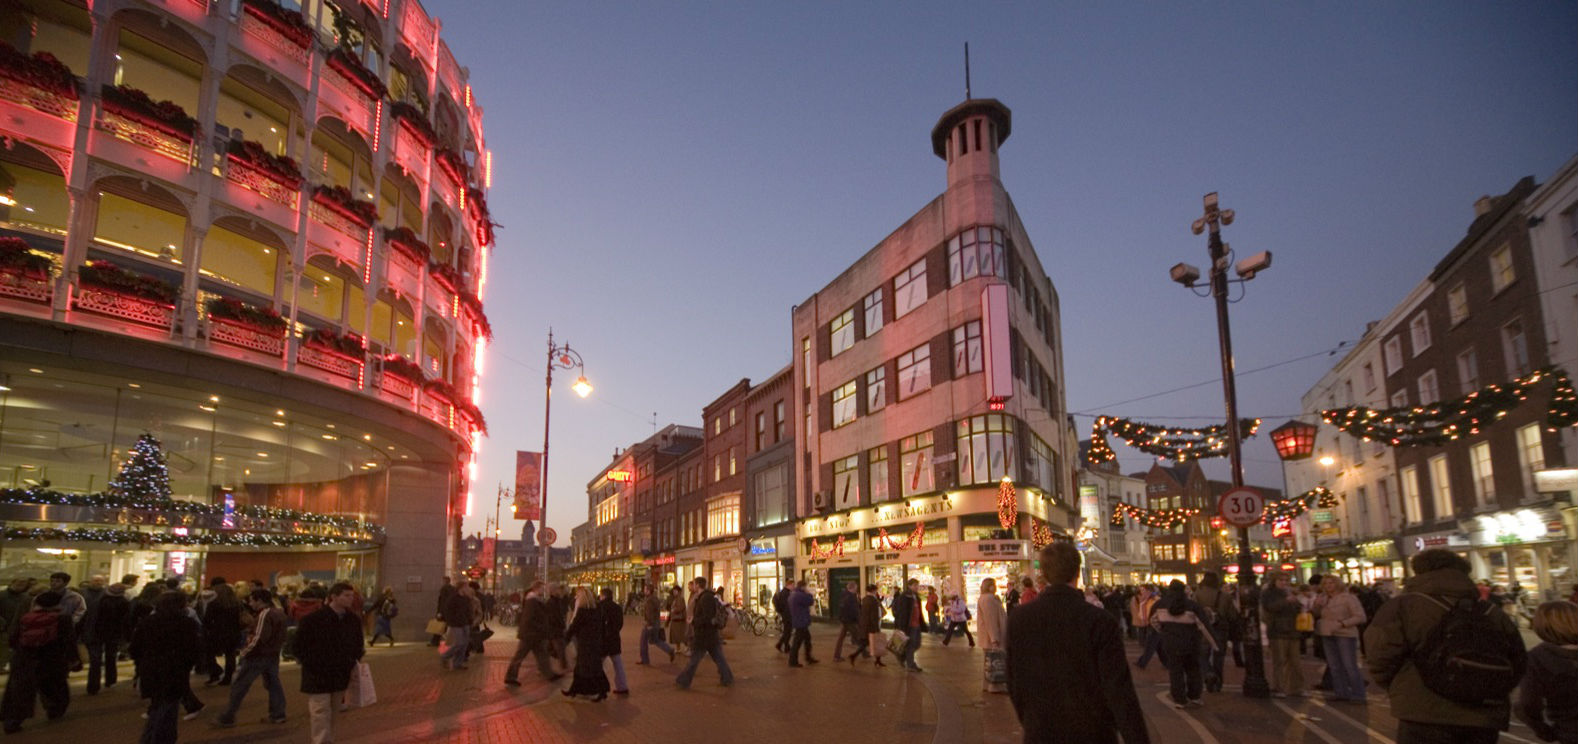 City Retailers Optimistic For Last Few Shopping Days